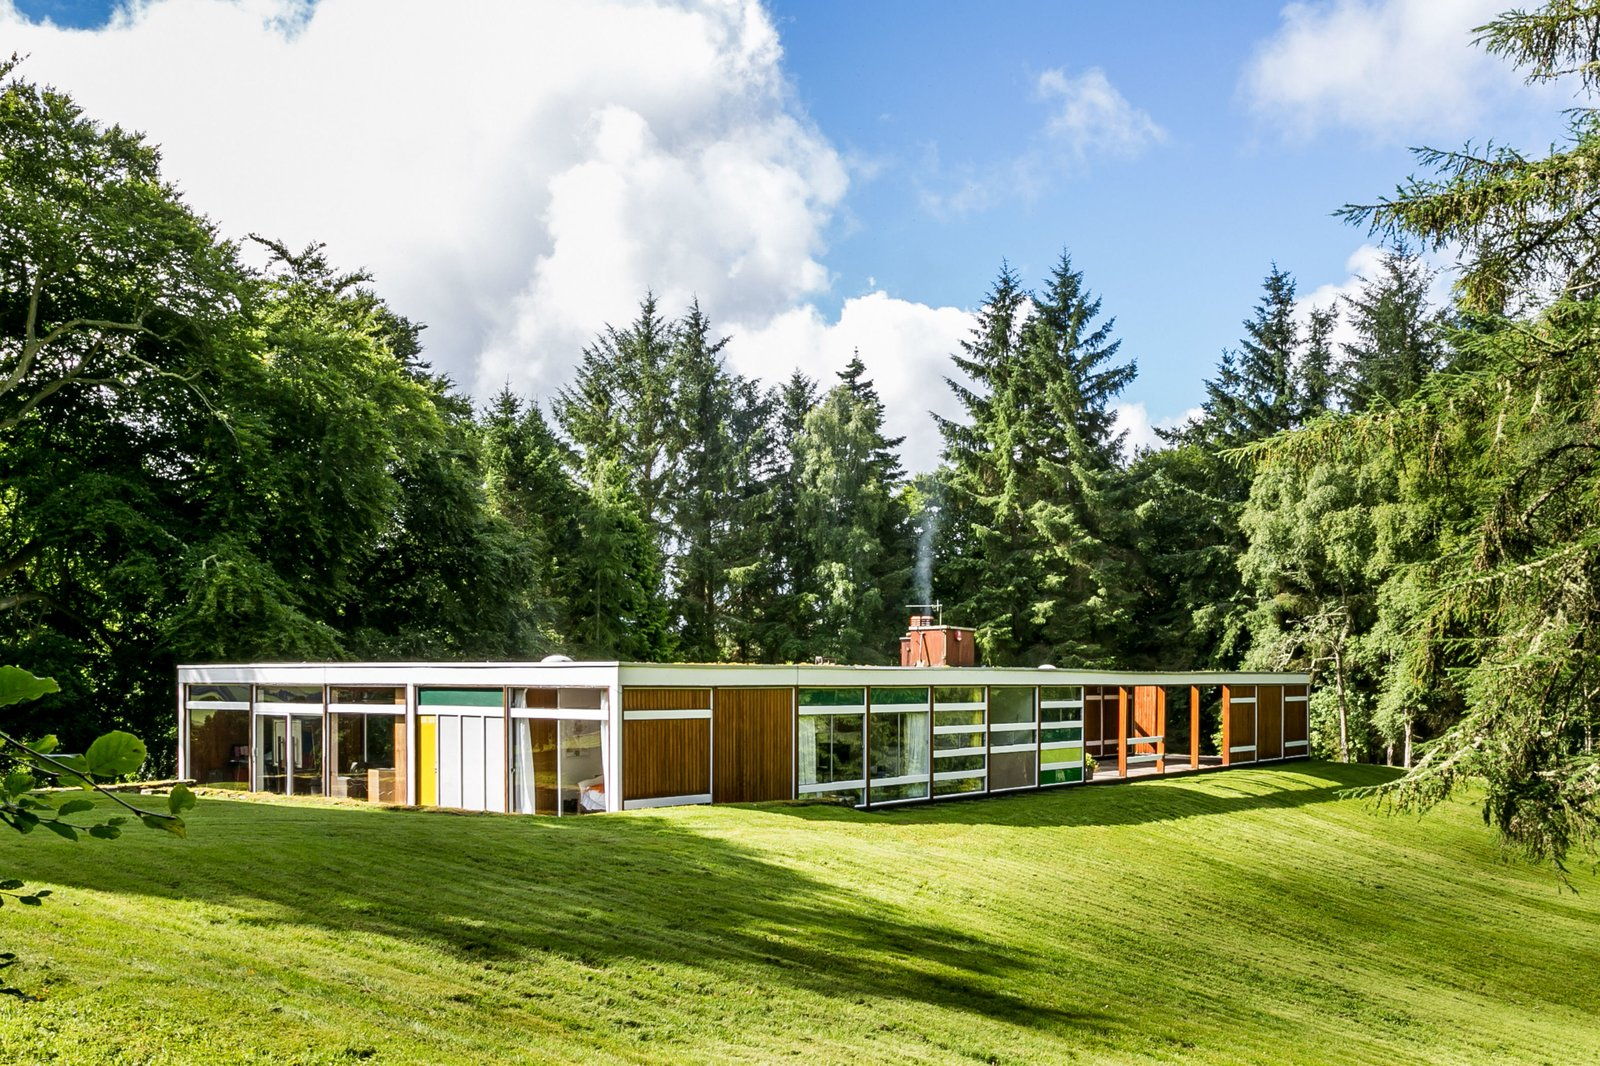 The Iconic, Midcentury Home That Peter Womersley Designed For Bernat Klein Asks $1.02M